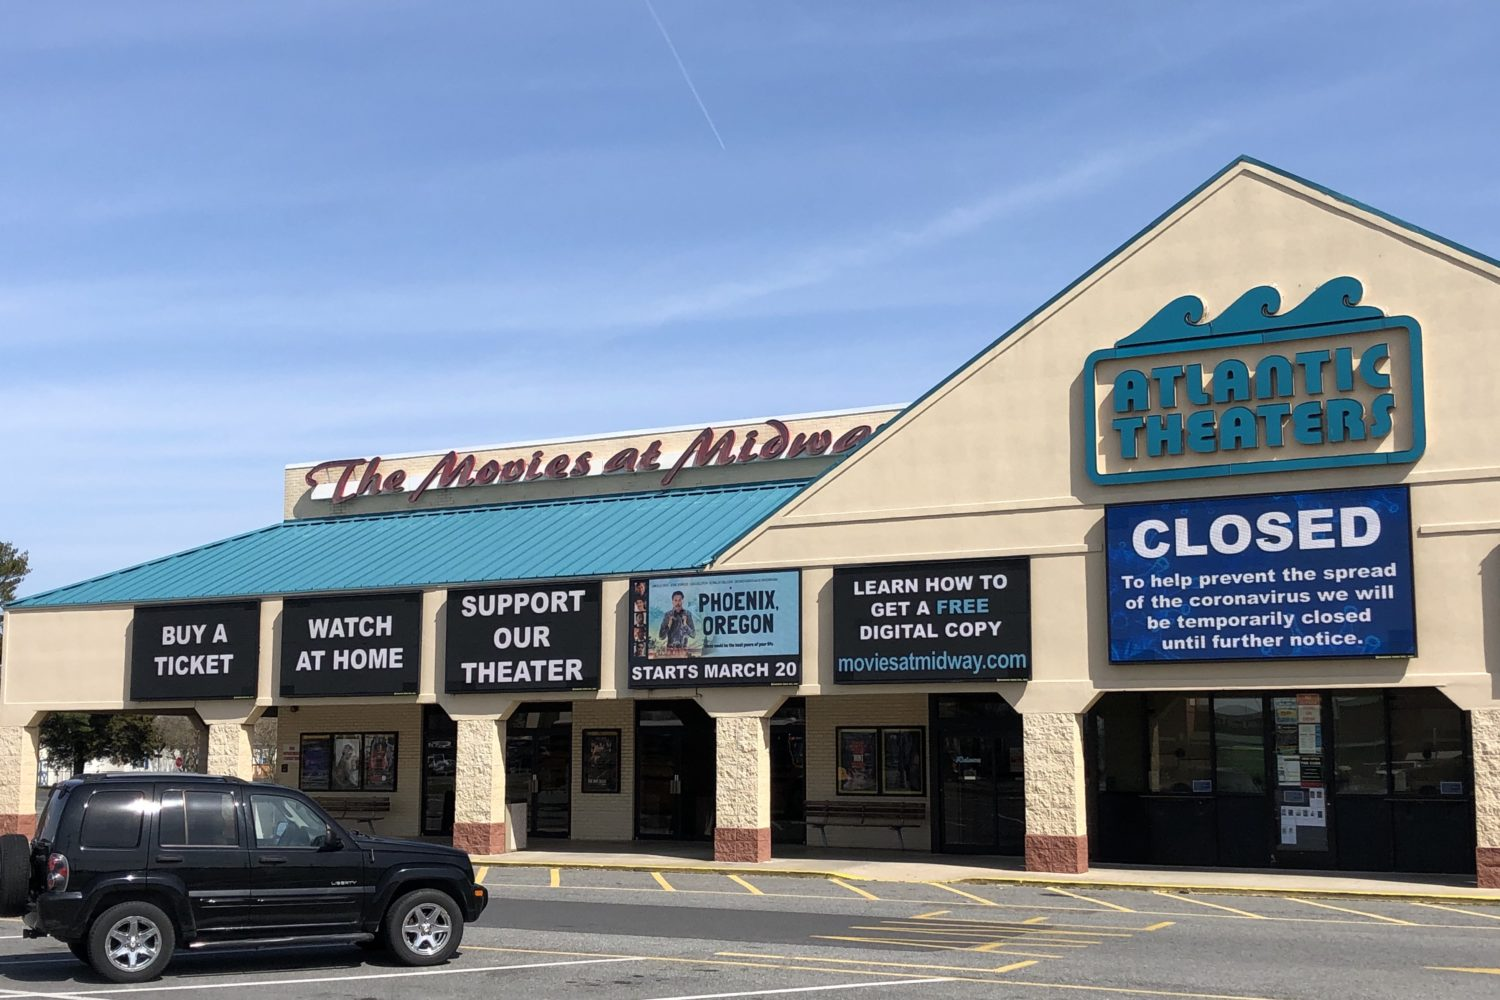 Movies At Midway in Rehoboth Beach, Delaware